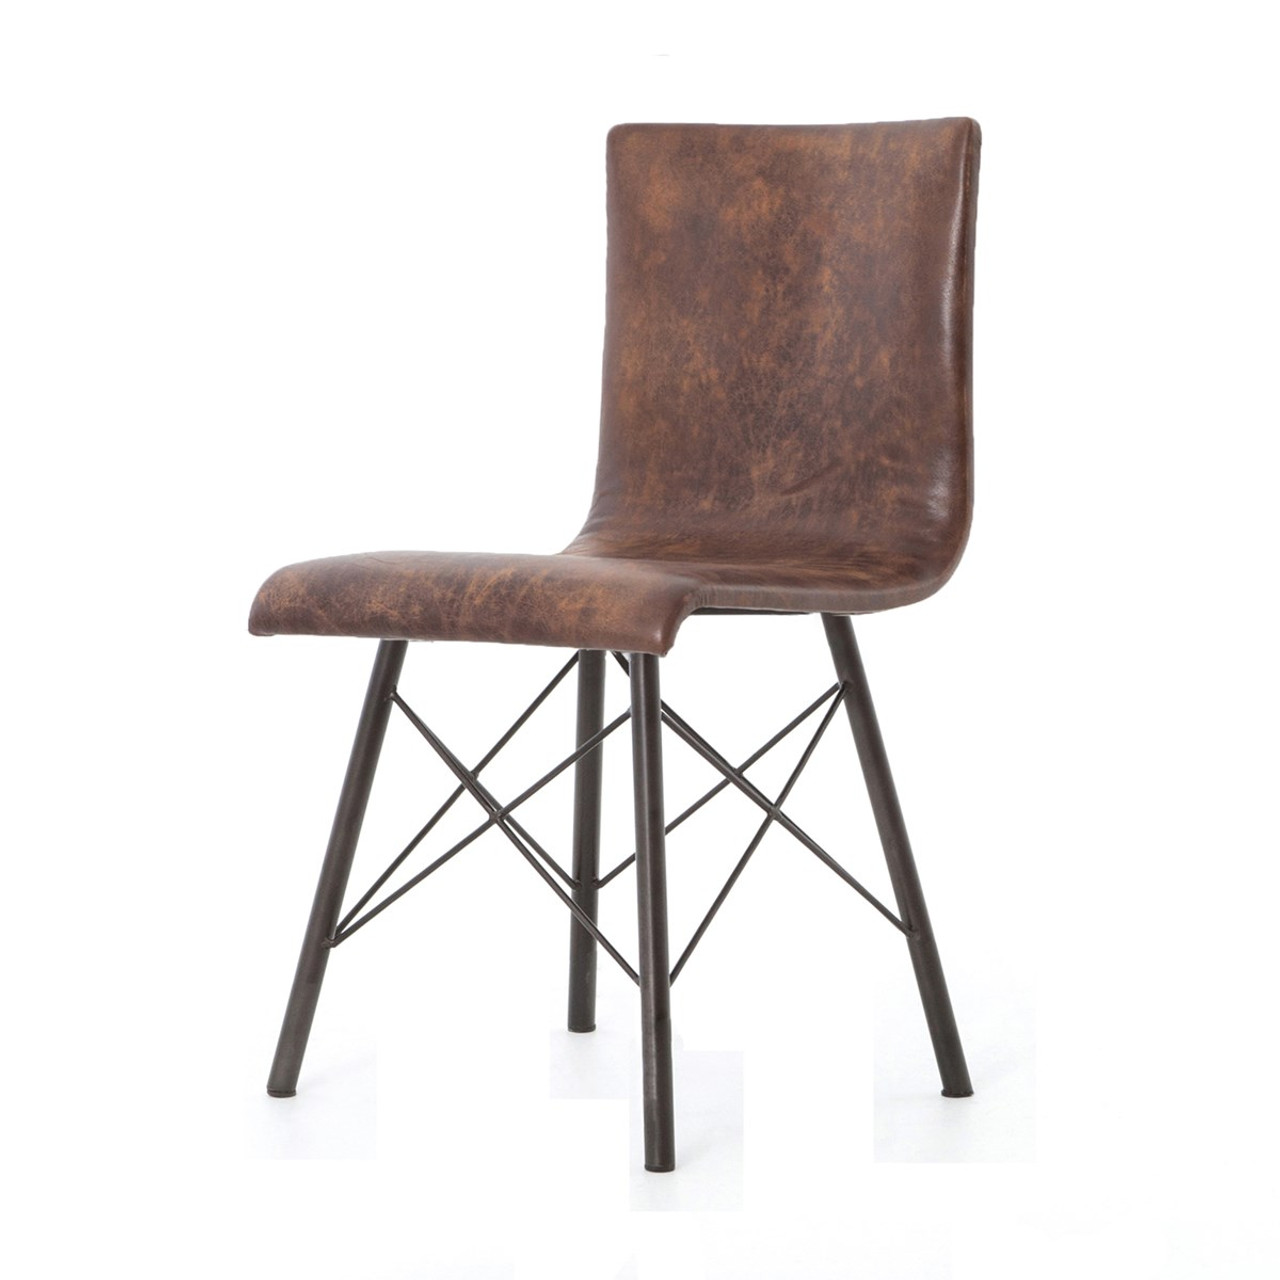 brown leather dining chairs Diaw Distressed Brown Leather Dining Chair | Zin Home brown leather dining chairs